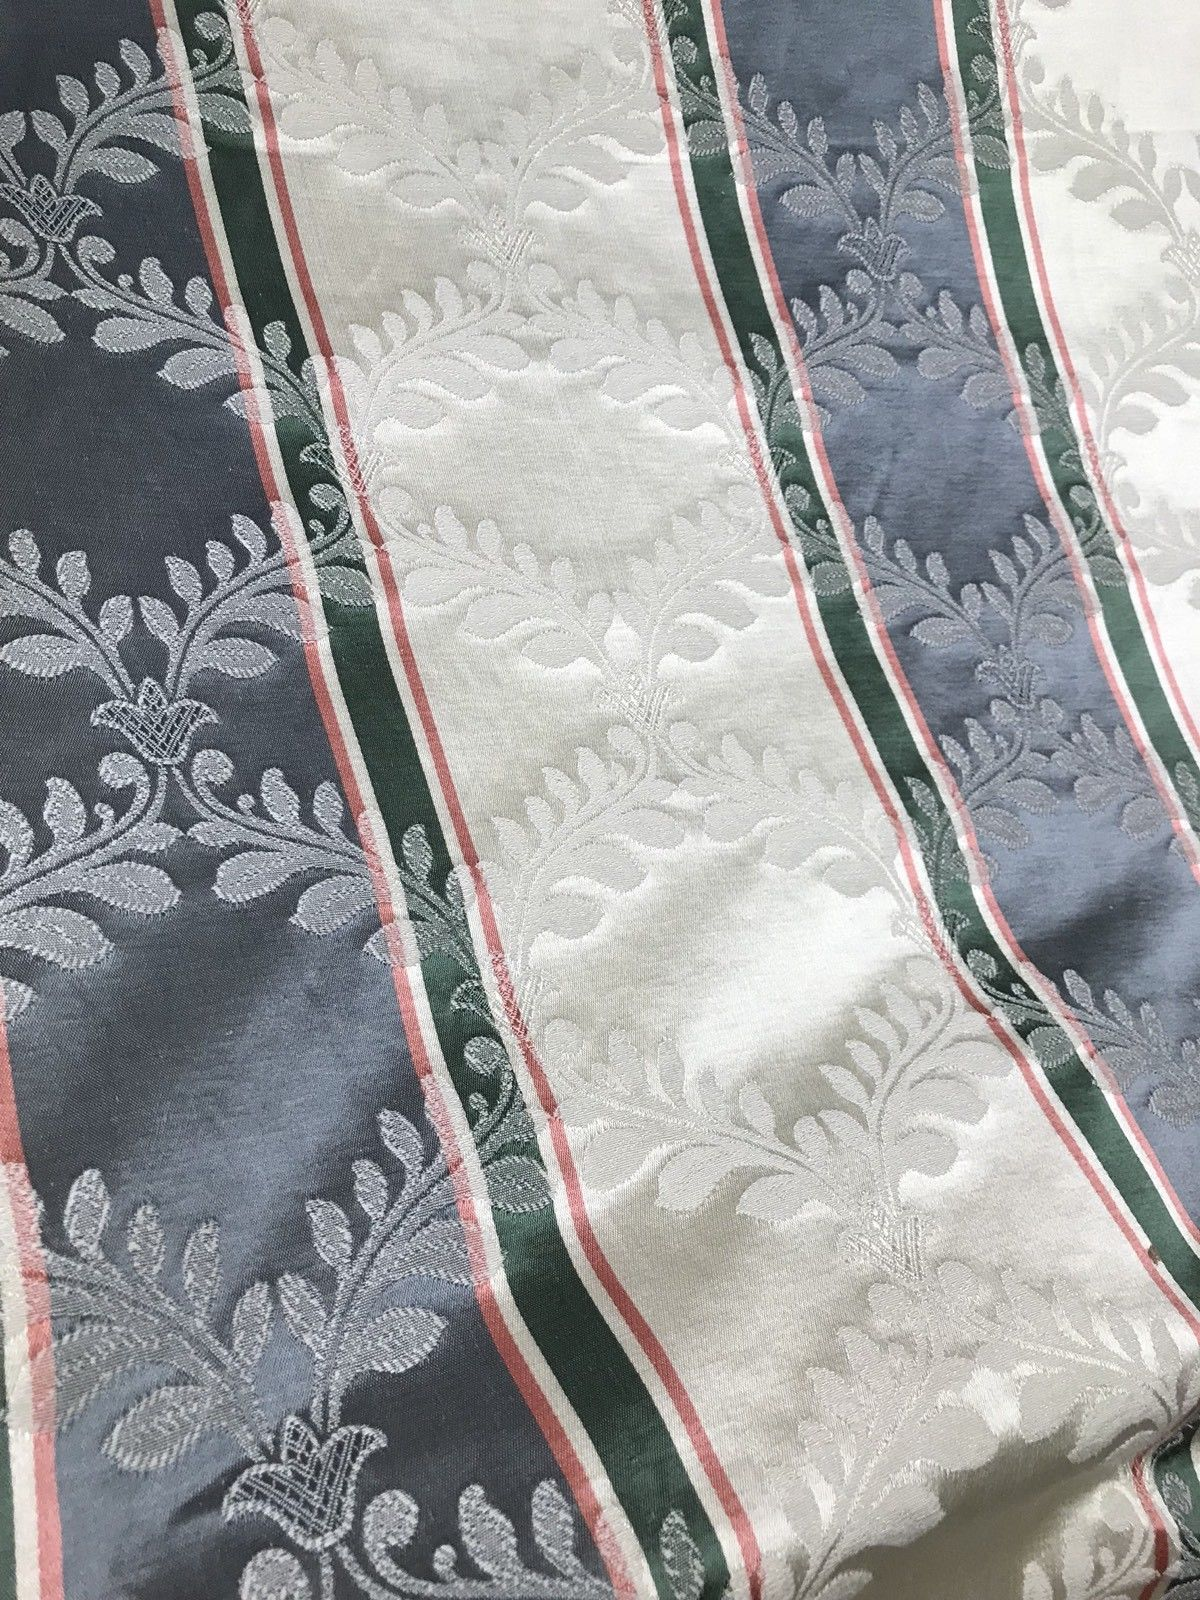 NEW! SALE! Designer Brocade Satin Fabric- French Blue Stripe- Drapery Damask - Fancy Styles Fabric Boutique